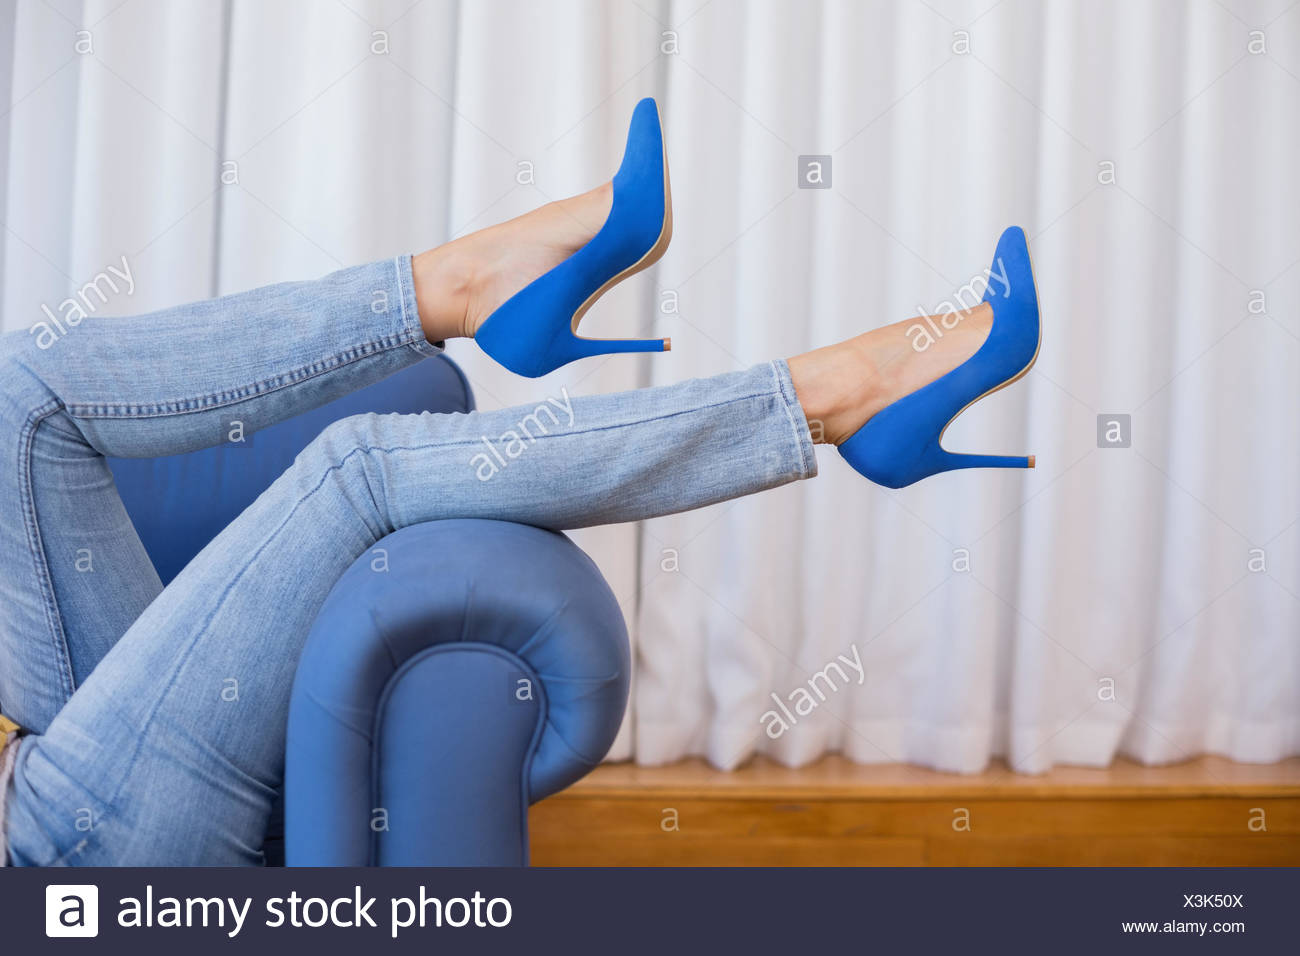 Womans legs in high heels - Stock Image